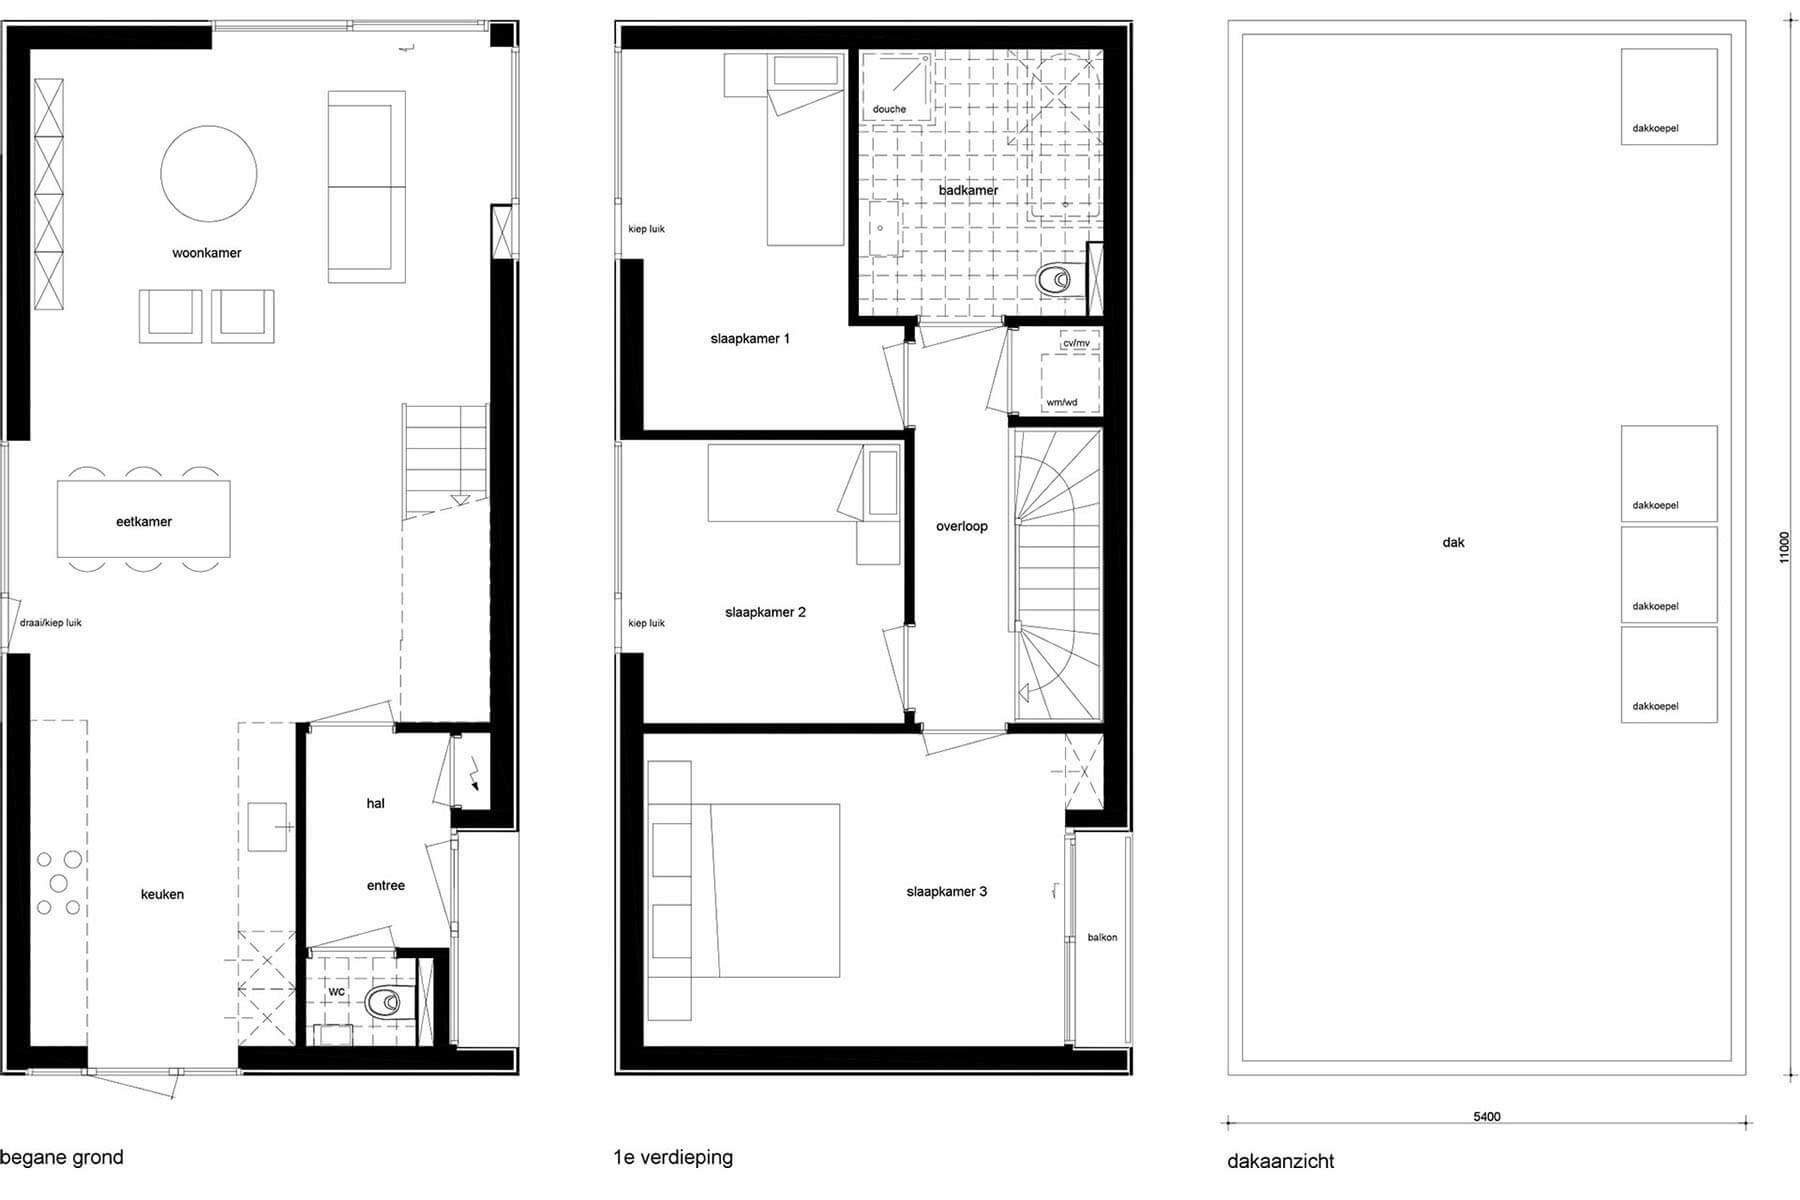 8A-Architecten-datcha-house-2-Lent-10